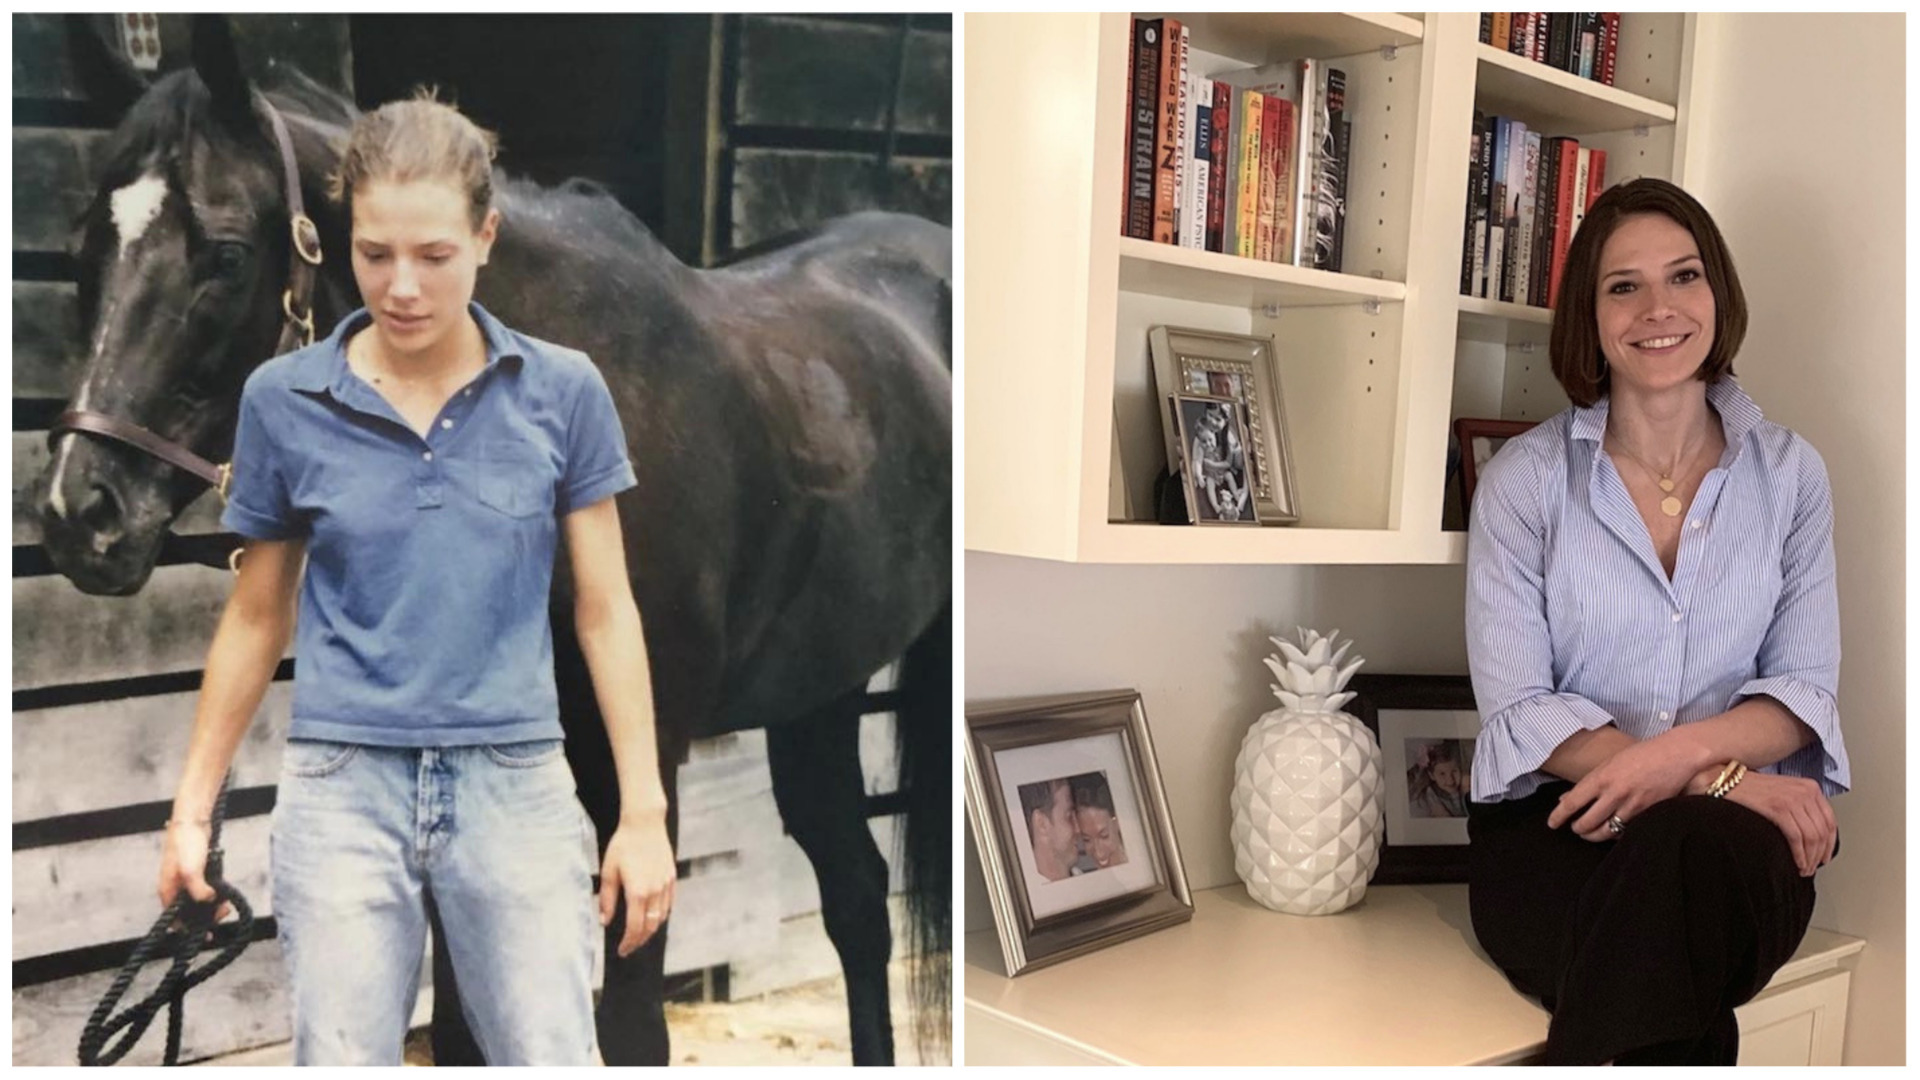 75a0ab4b Devon Horse Show edition: Survivor Kirstin Day back in the saddle, What's  new in 2019, Shop the show. Plus, Cryoskin is here (!), Picket Post Pickle,  ...